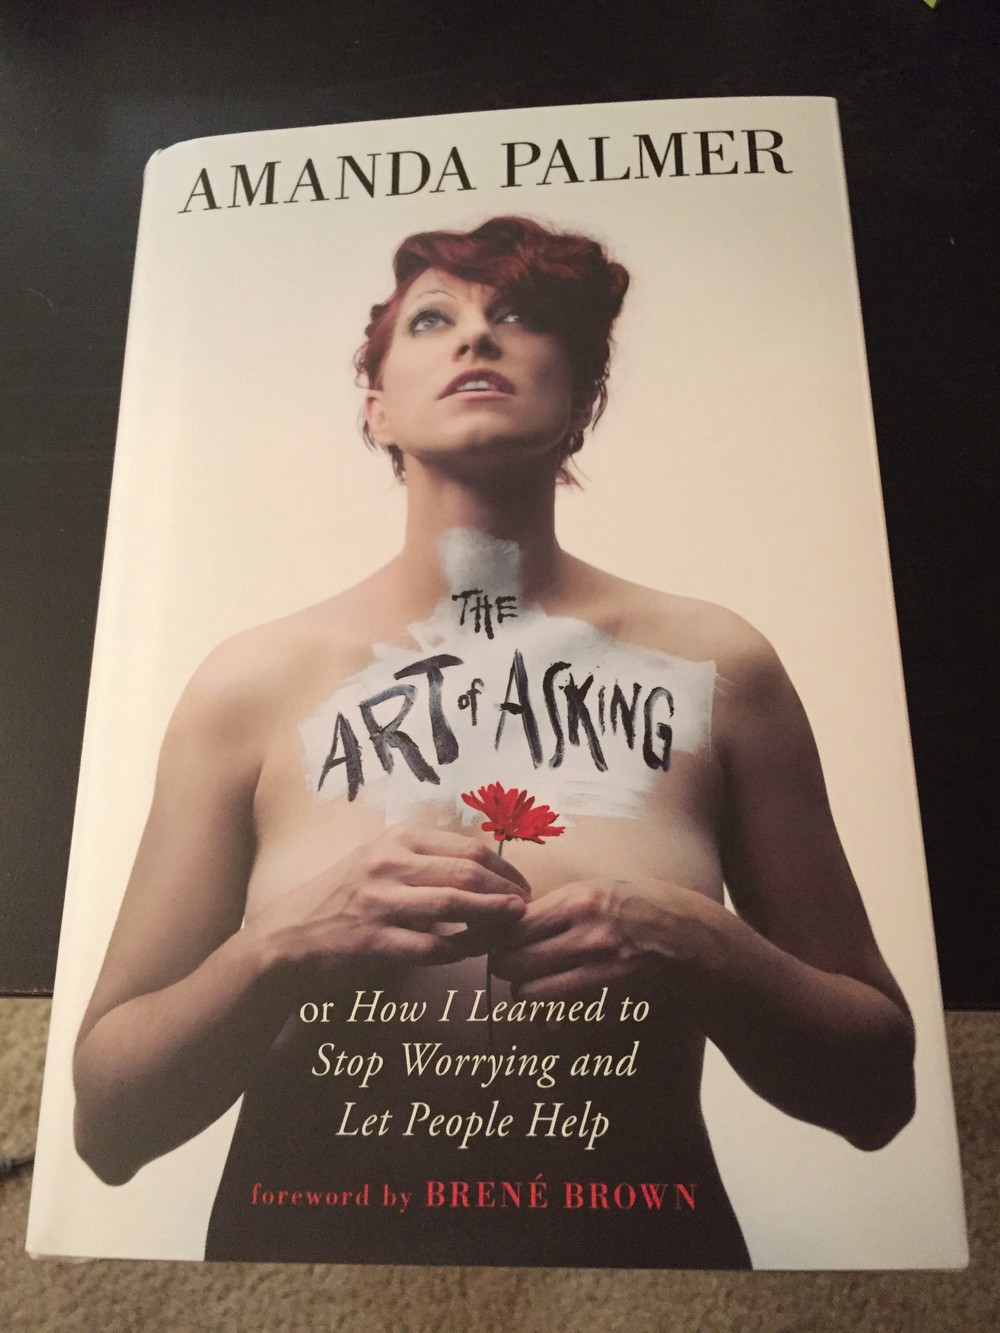 amanda palmer the art of asking.jpeg